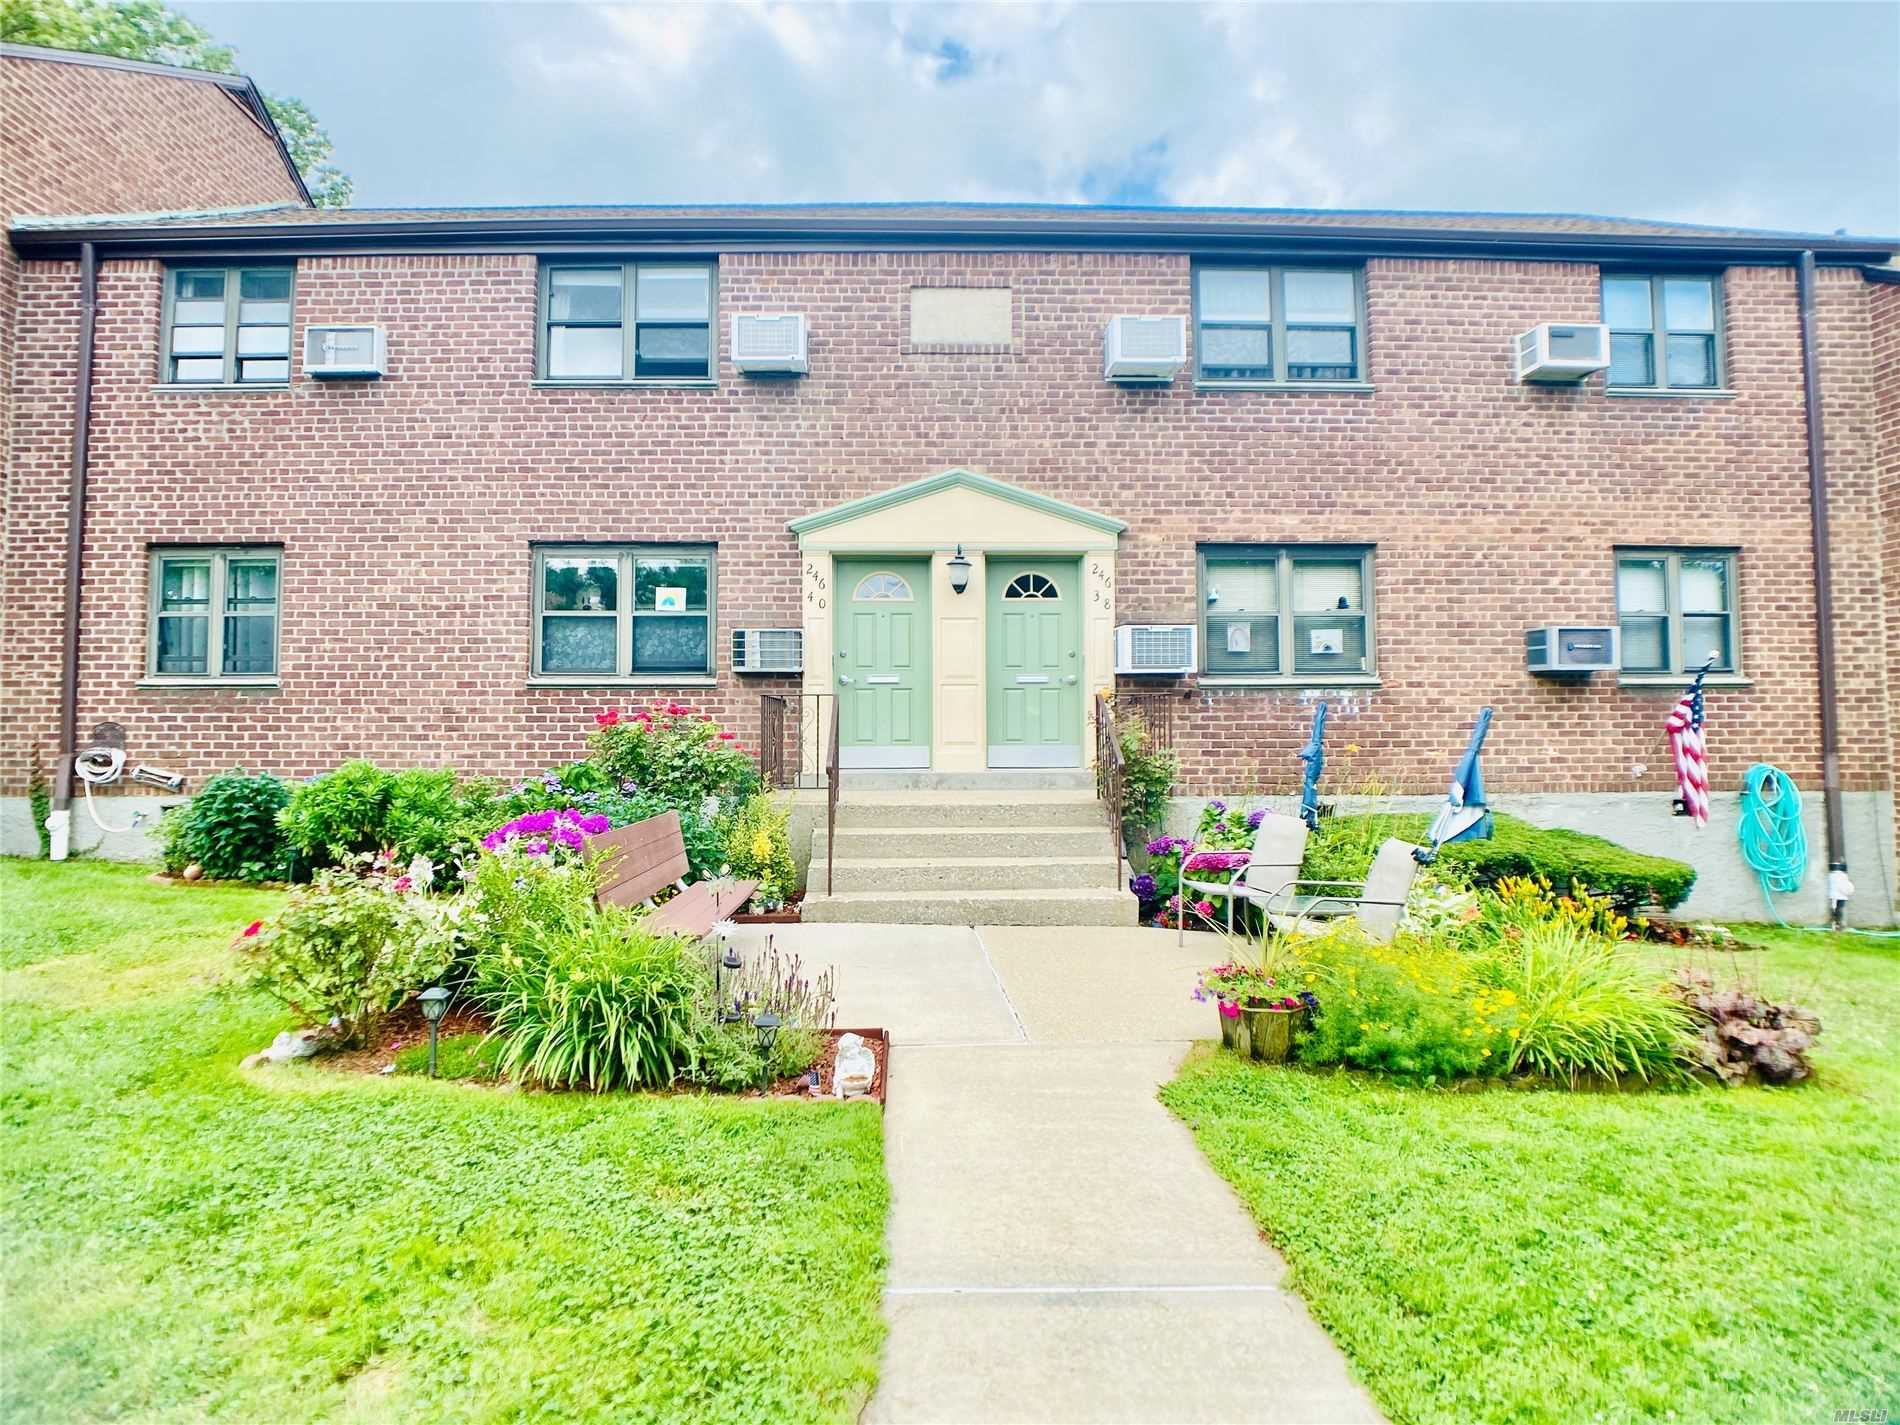 246-40 57th Drive #B2-3, Douglaston, NY 11362 - MLS#: 3233135